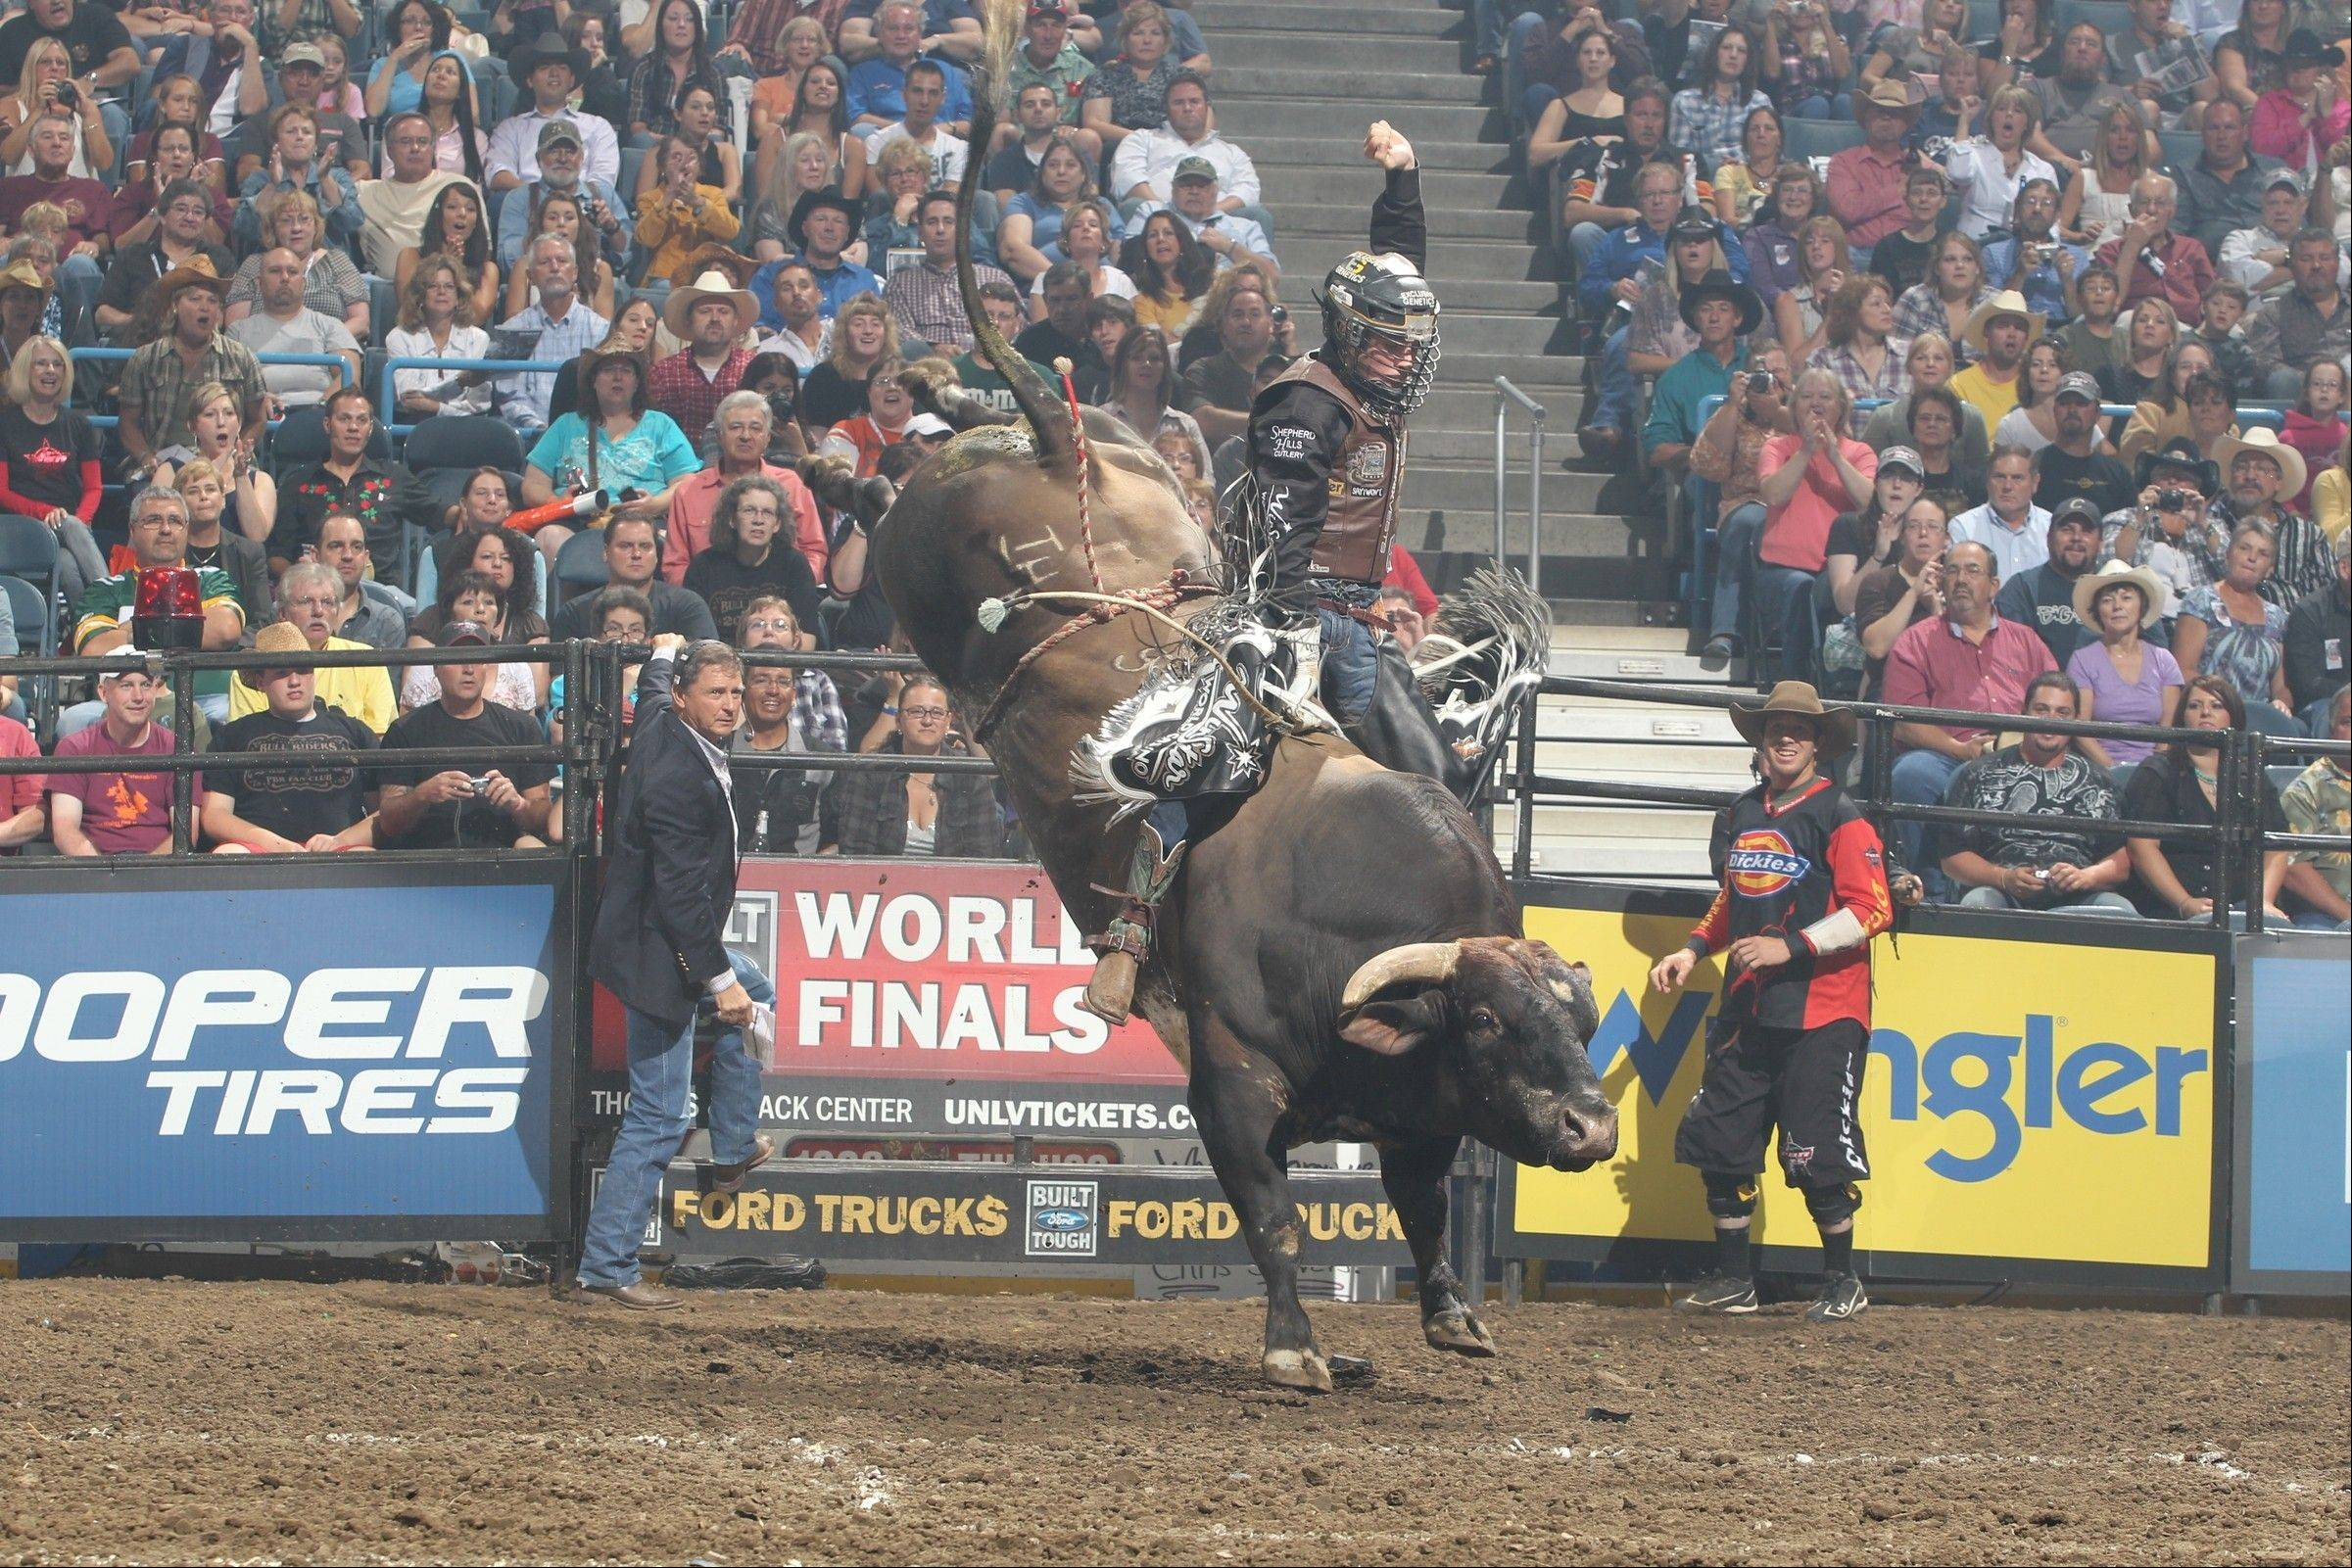 The 2013 Professional Bull Riders (PBR) Built Ford Tough Series stops at the Allstate Arena in Rosemont on Saturday and Sunday, Jan. 12-13.